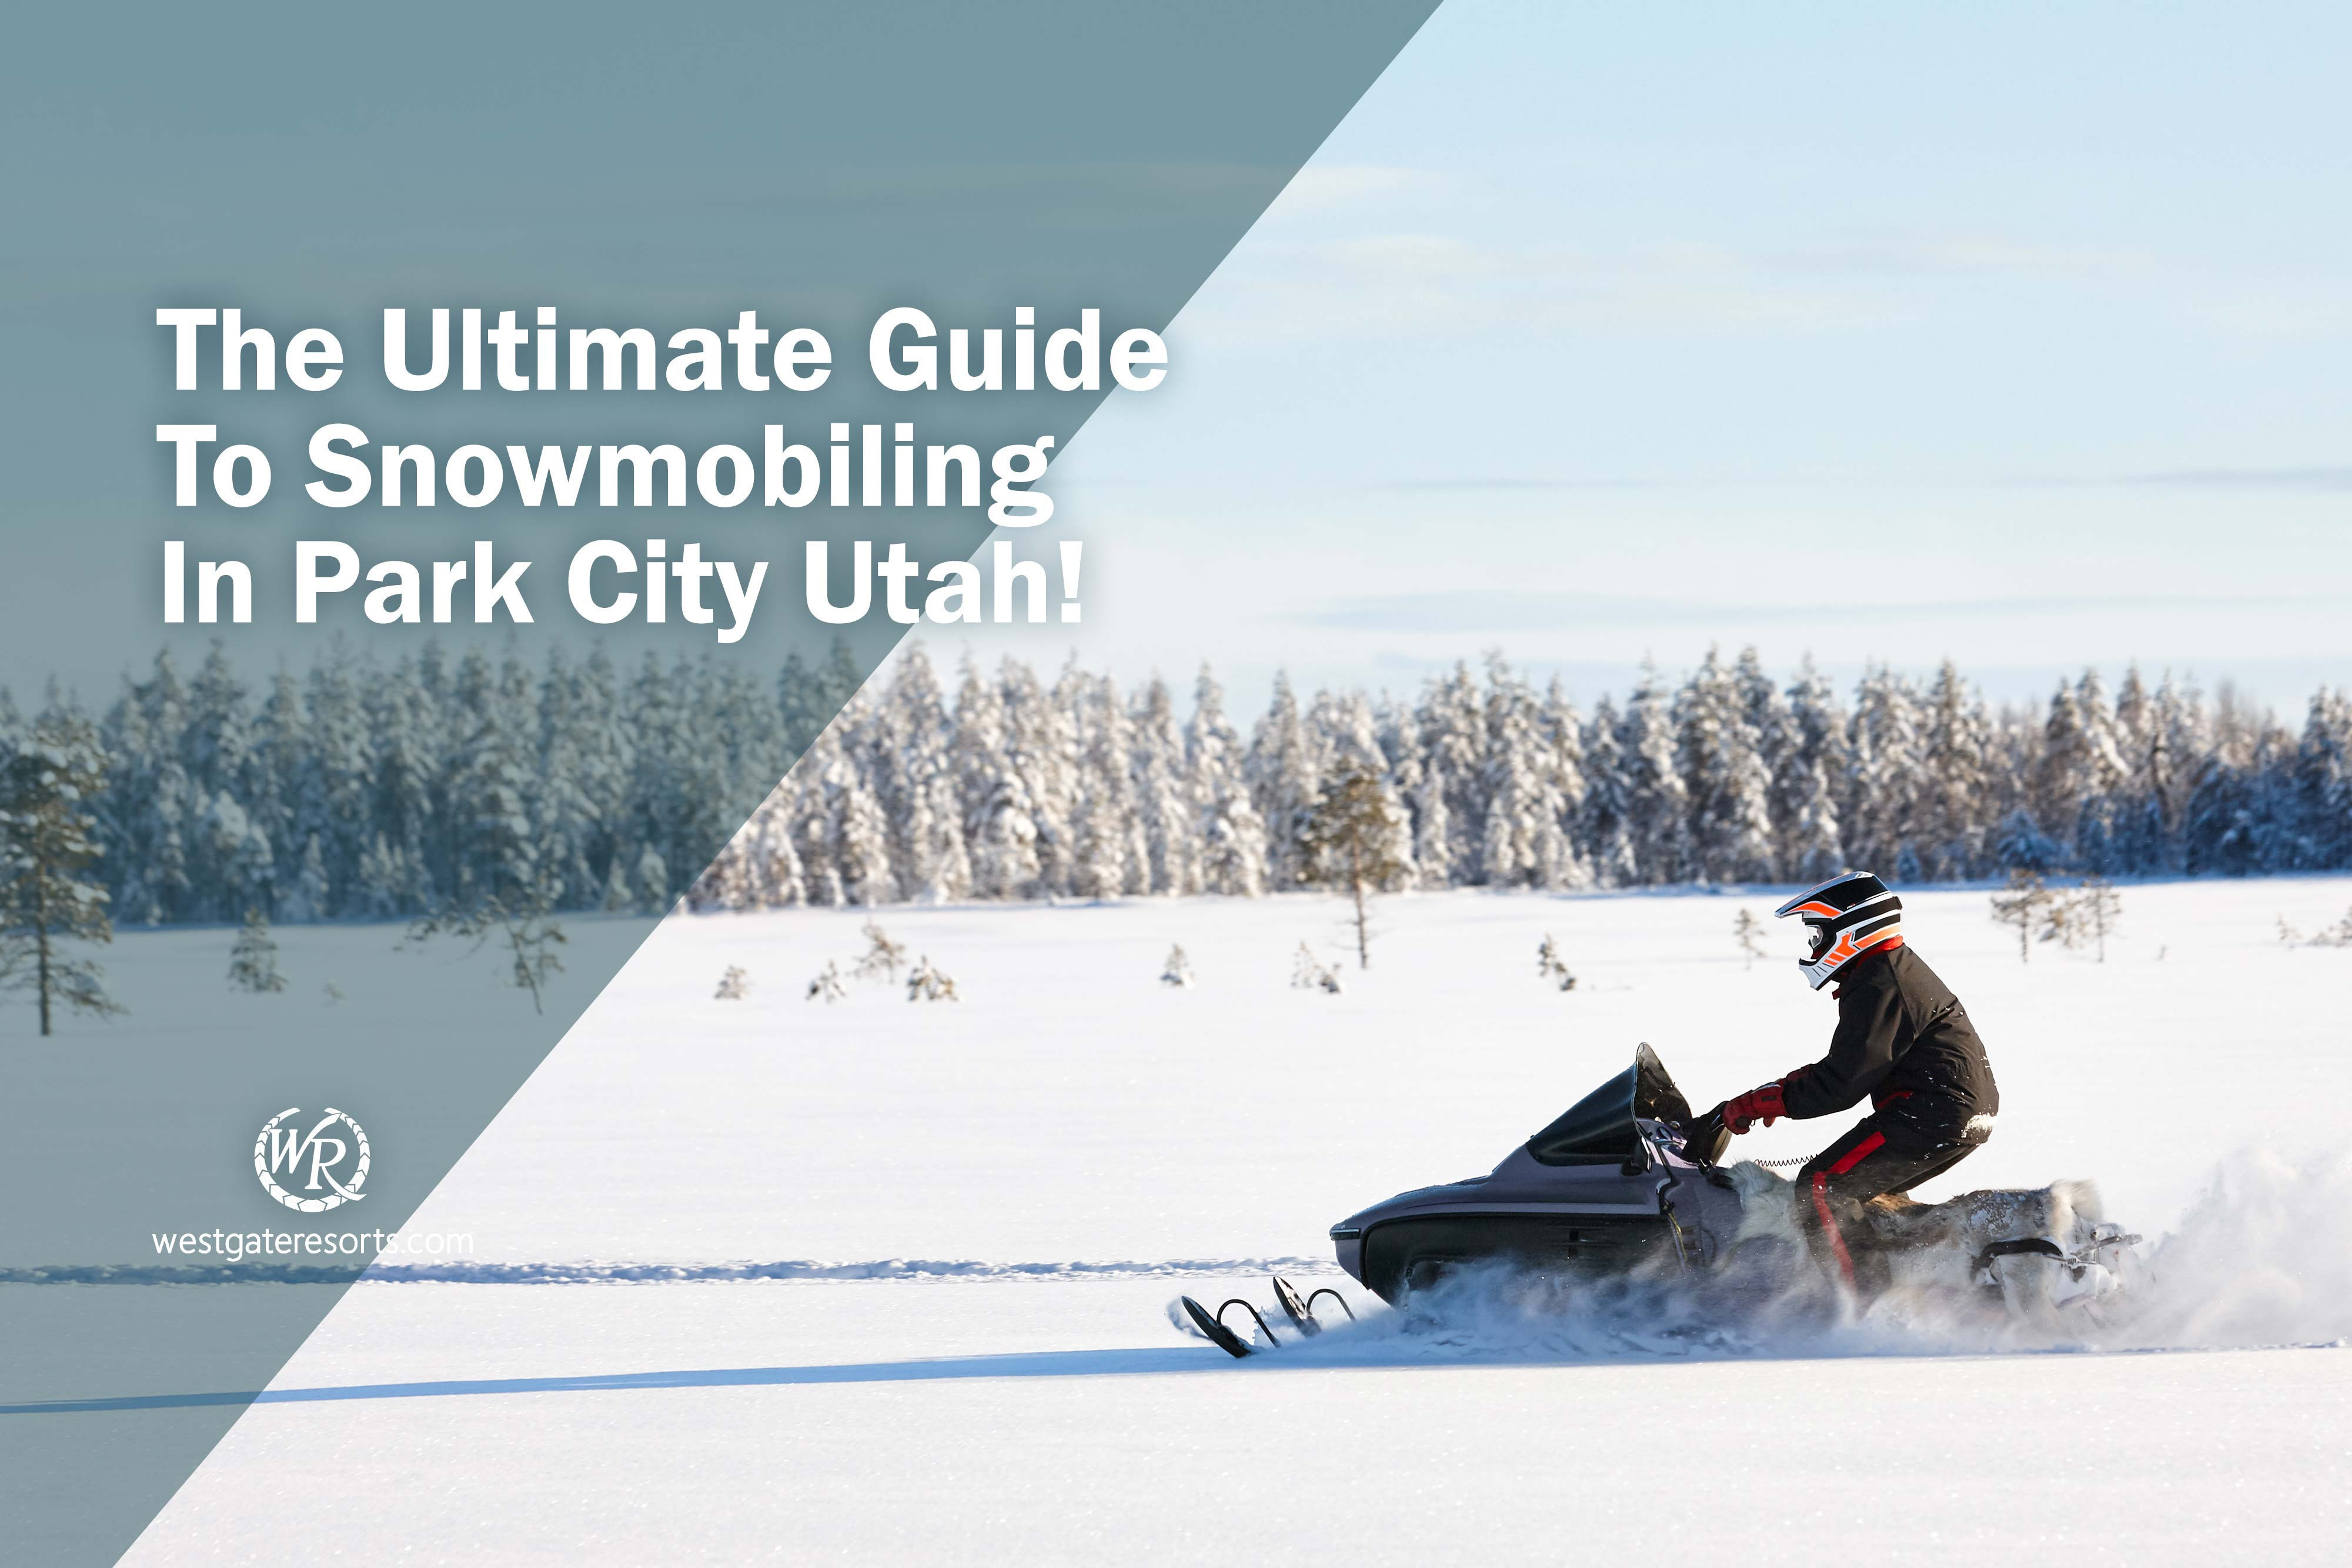 The Ultimate Guide to Snowmobiling in Park City Utah | Snowmobiling Park City